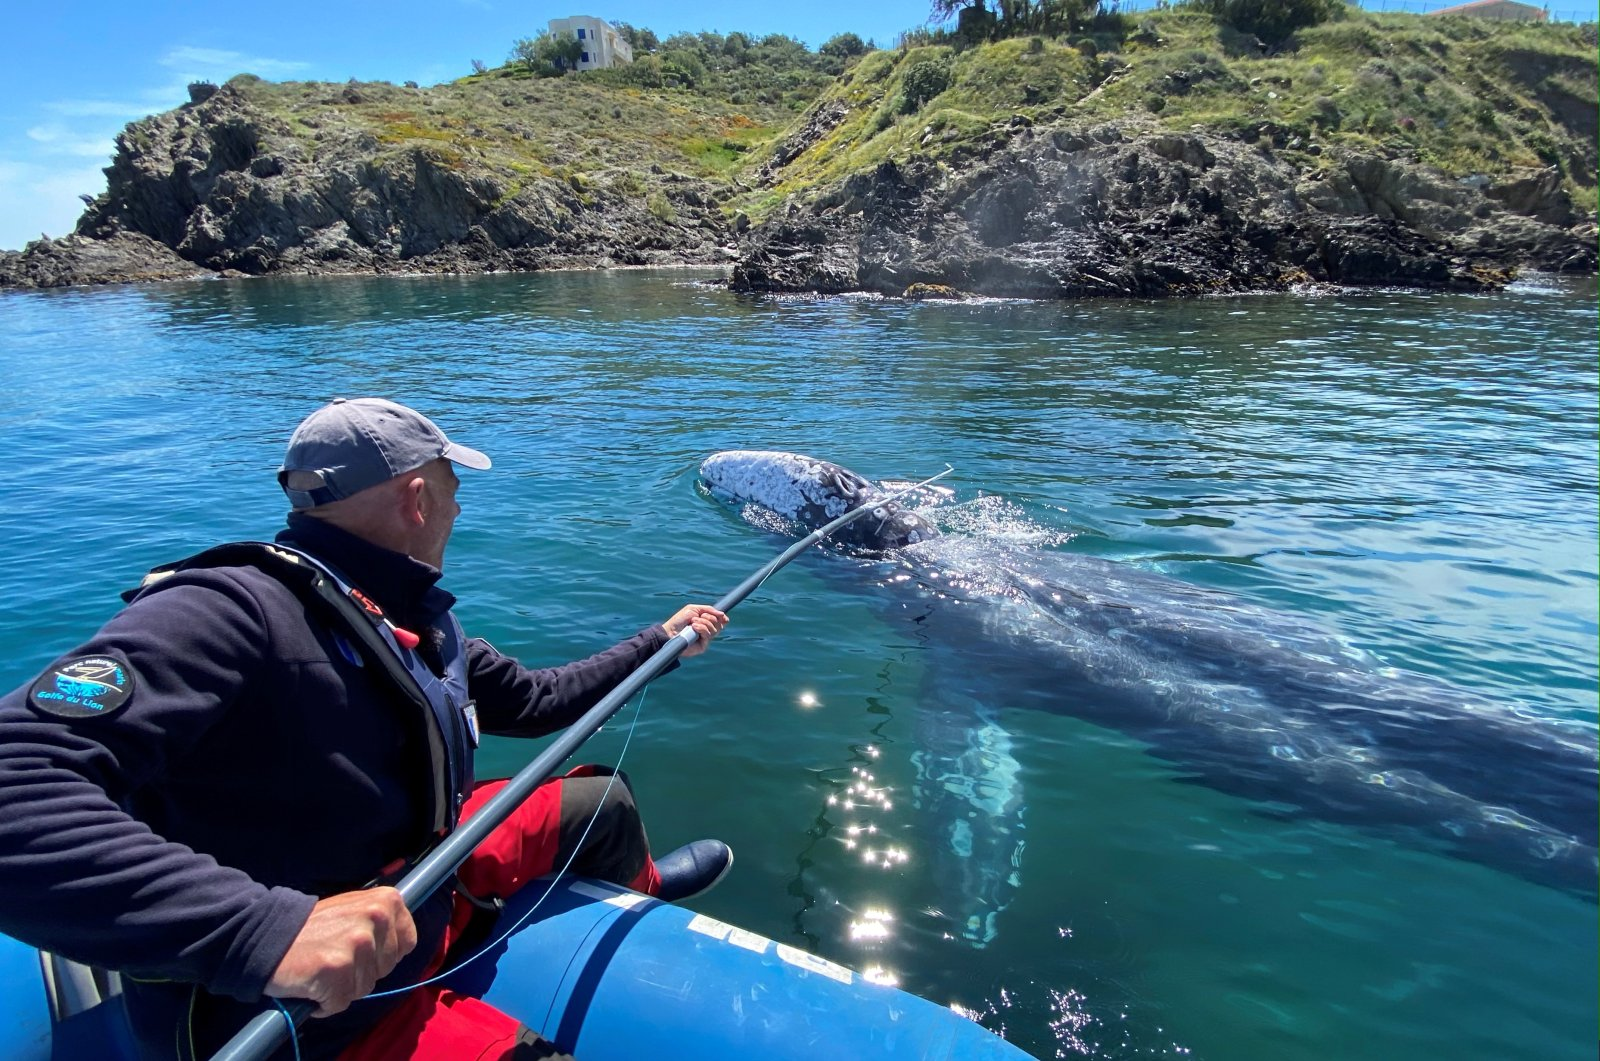 Thierry Auga-Bascou, scientist and member of the French Biodiversity Agency, takes a skin sample of Wally, the 15-month-old gray whale, swimming in the Mediterranean Sea past the coast of Argeles-Sur-Mer, France, May 6, 2021. (Reuters Photo)